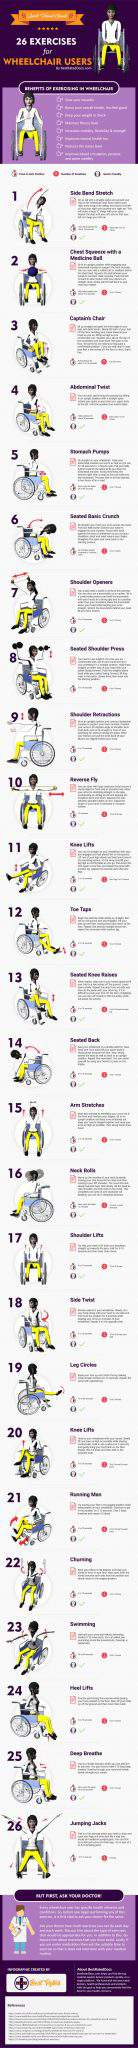 BRD-wheelchair-exercises-infographic-3